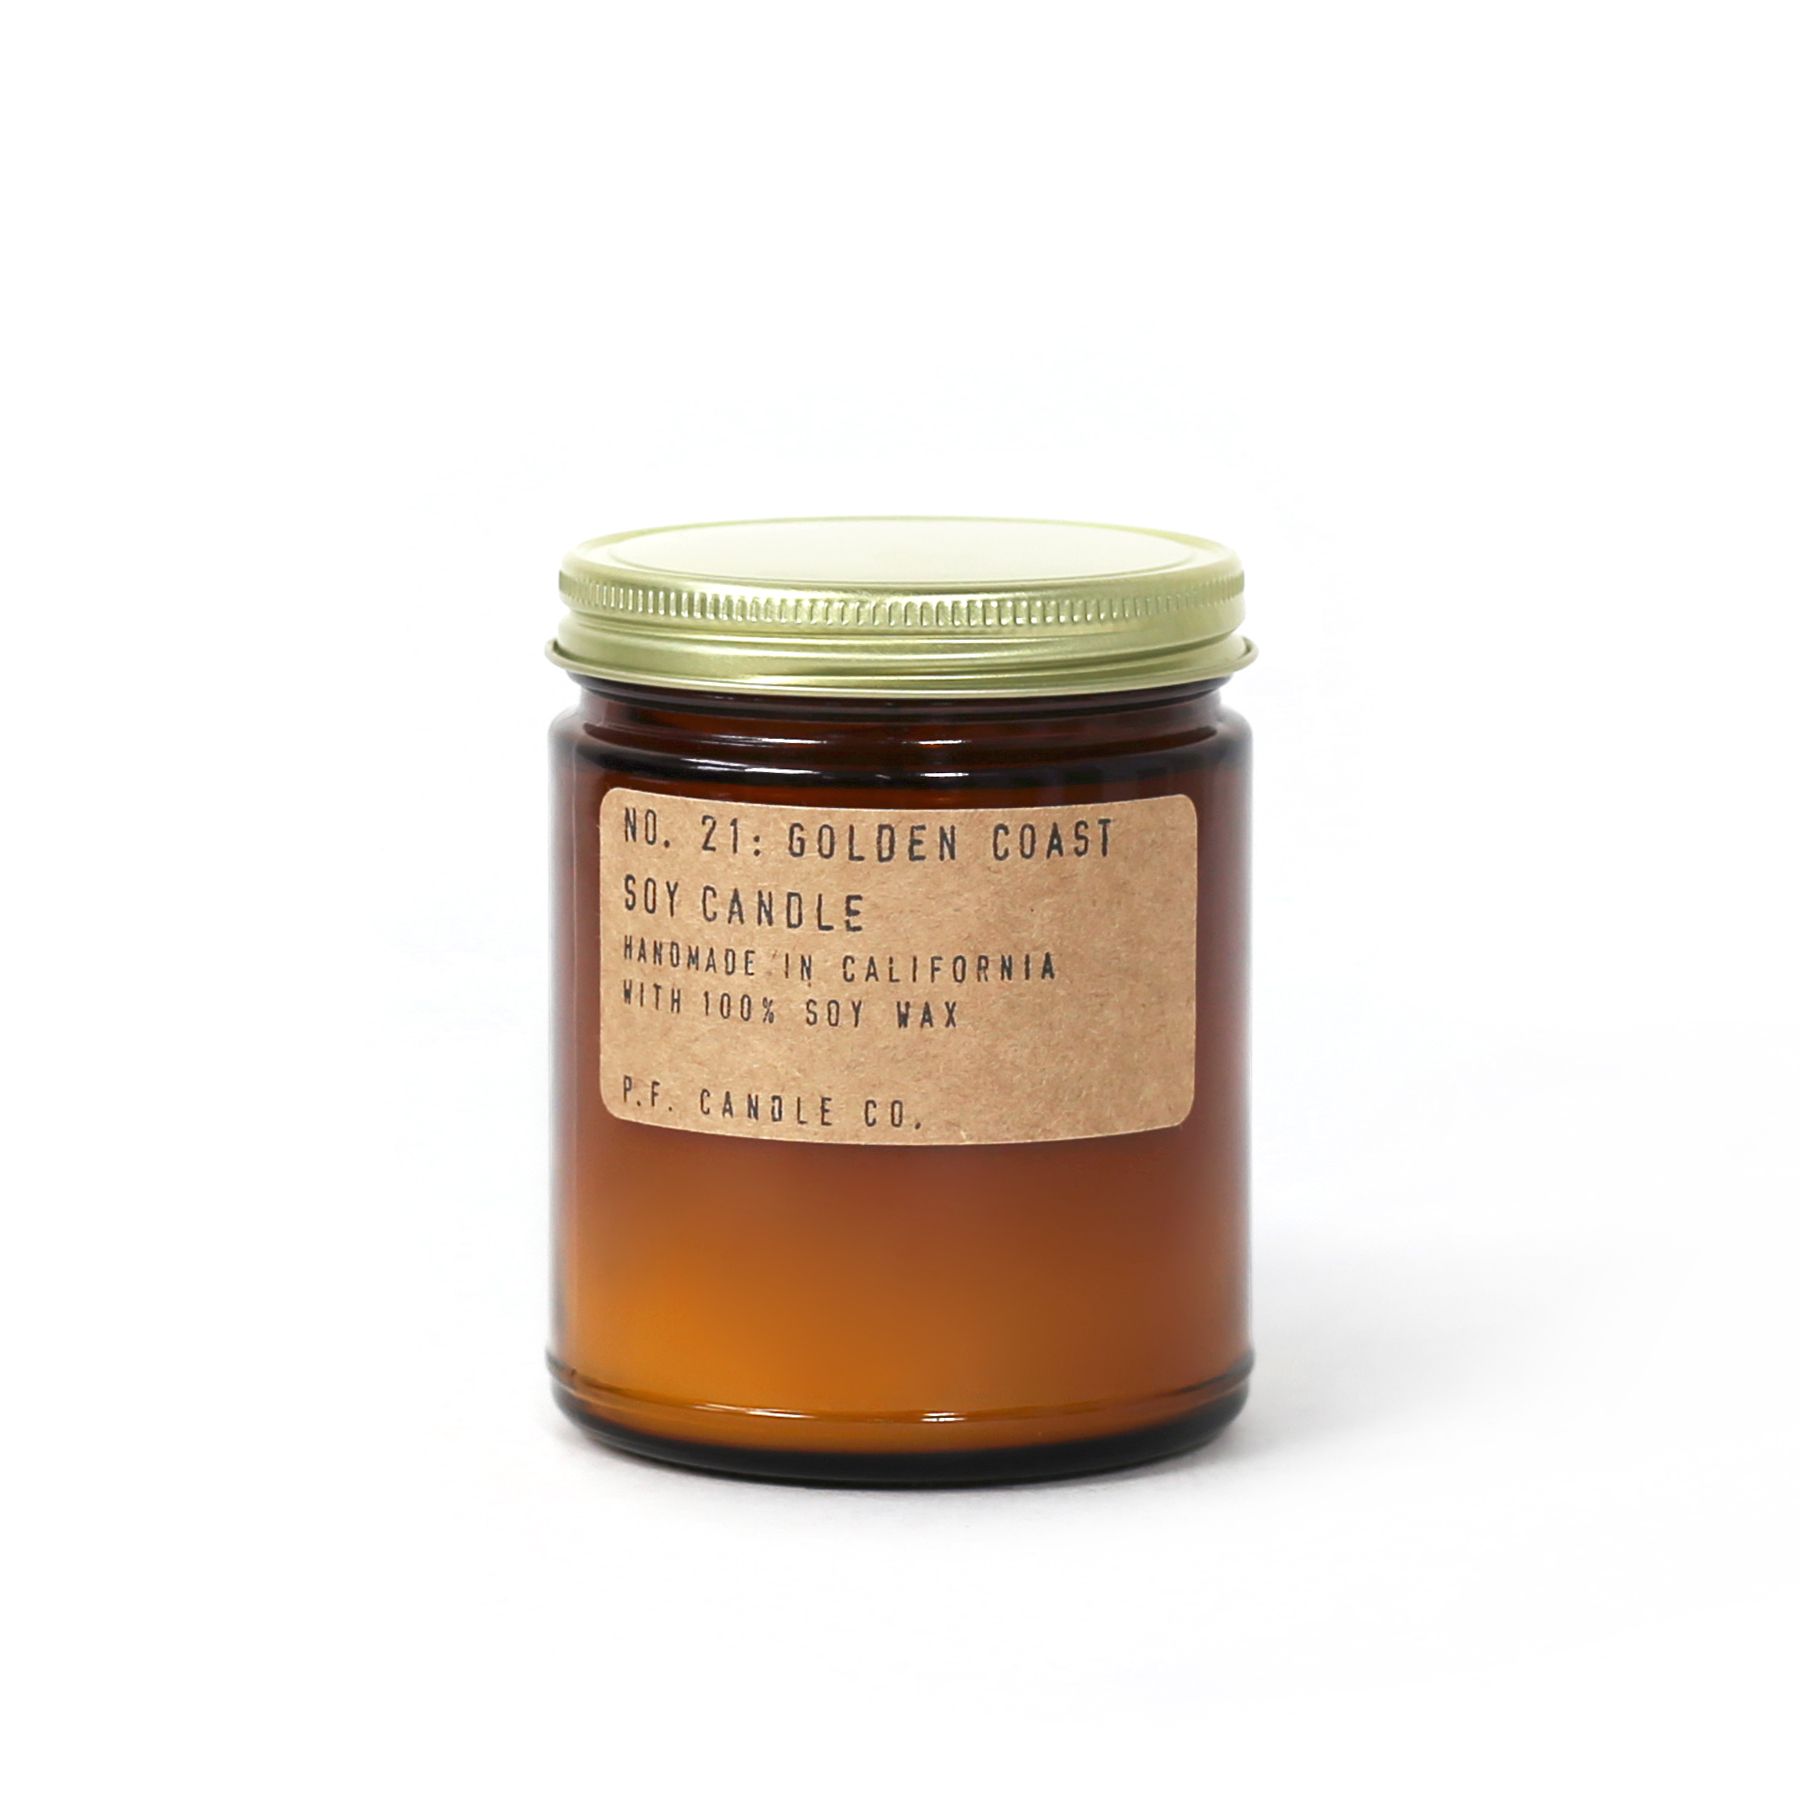 Golden Coast Soy Candle By PF Candle Co